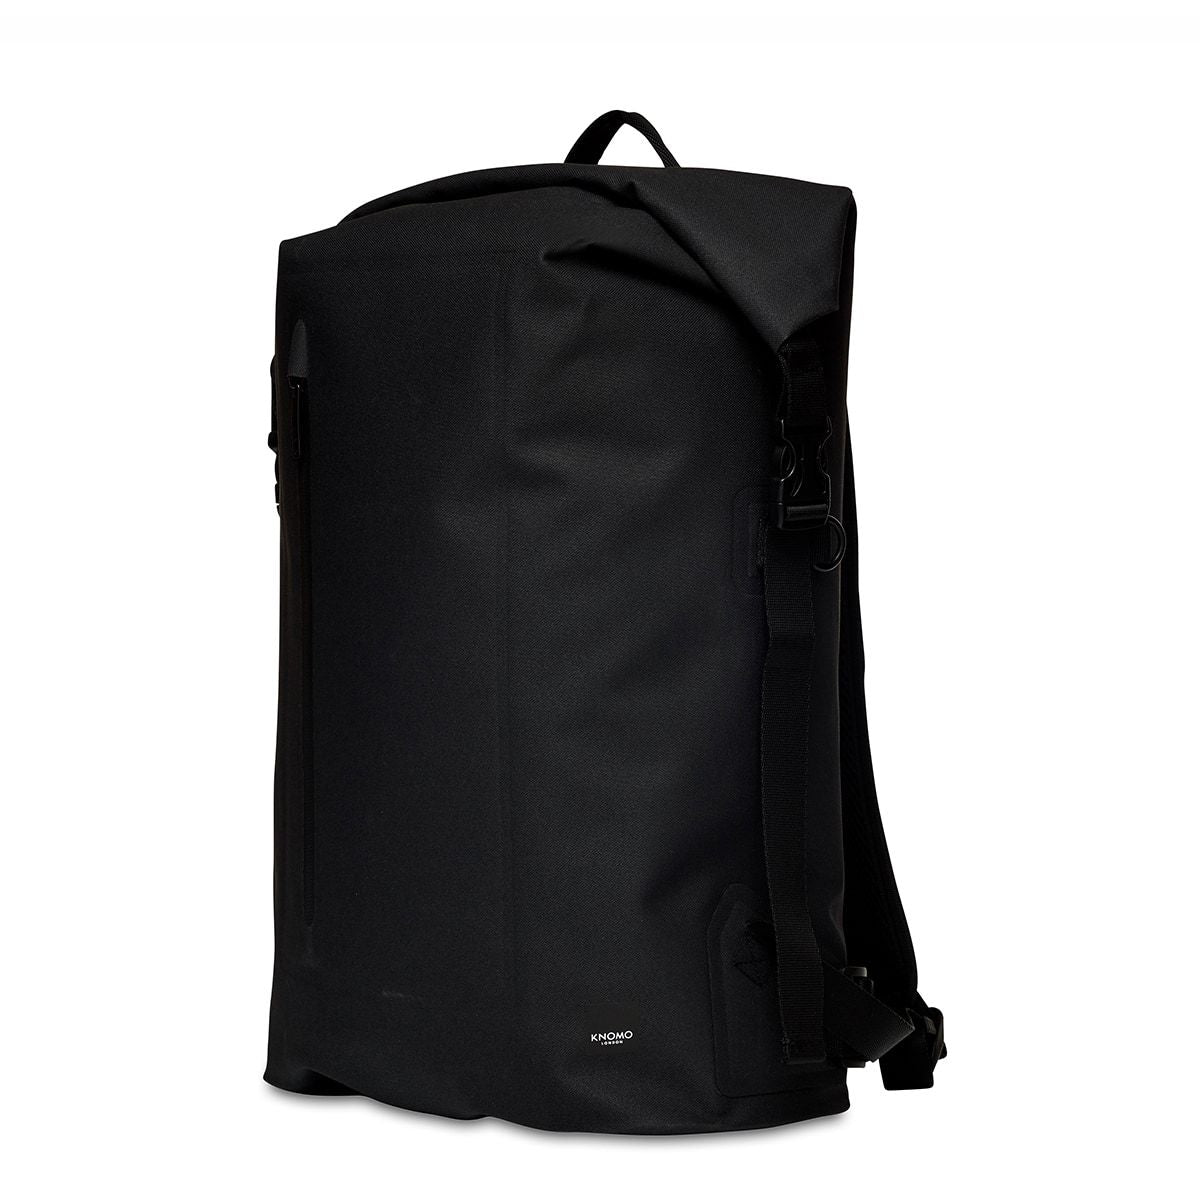 "KNOMO Cromwell Roll-Top Laptop Backpack Three Quarter View 14"" -  Black 